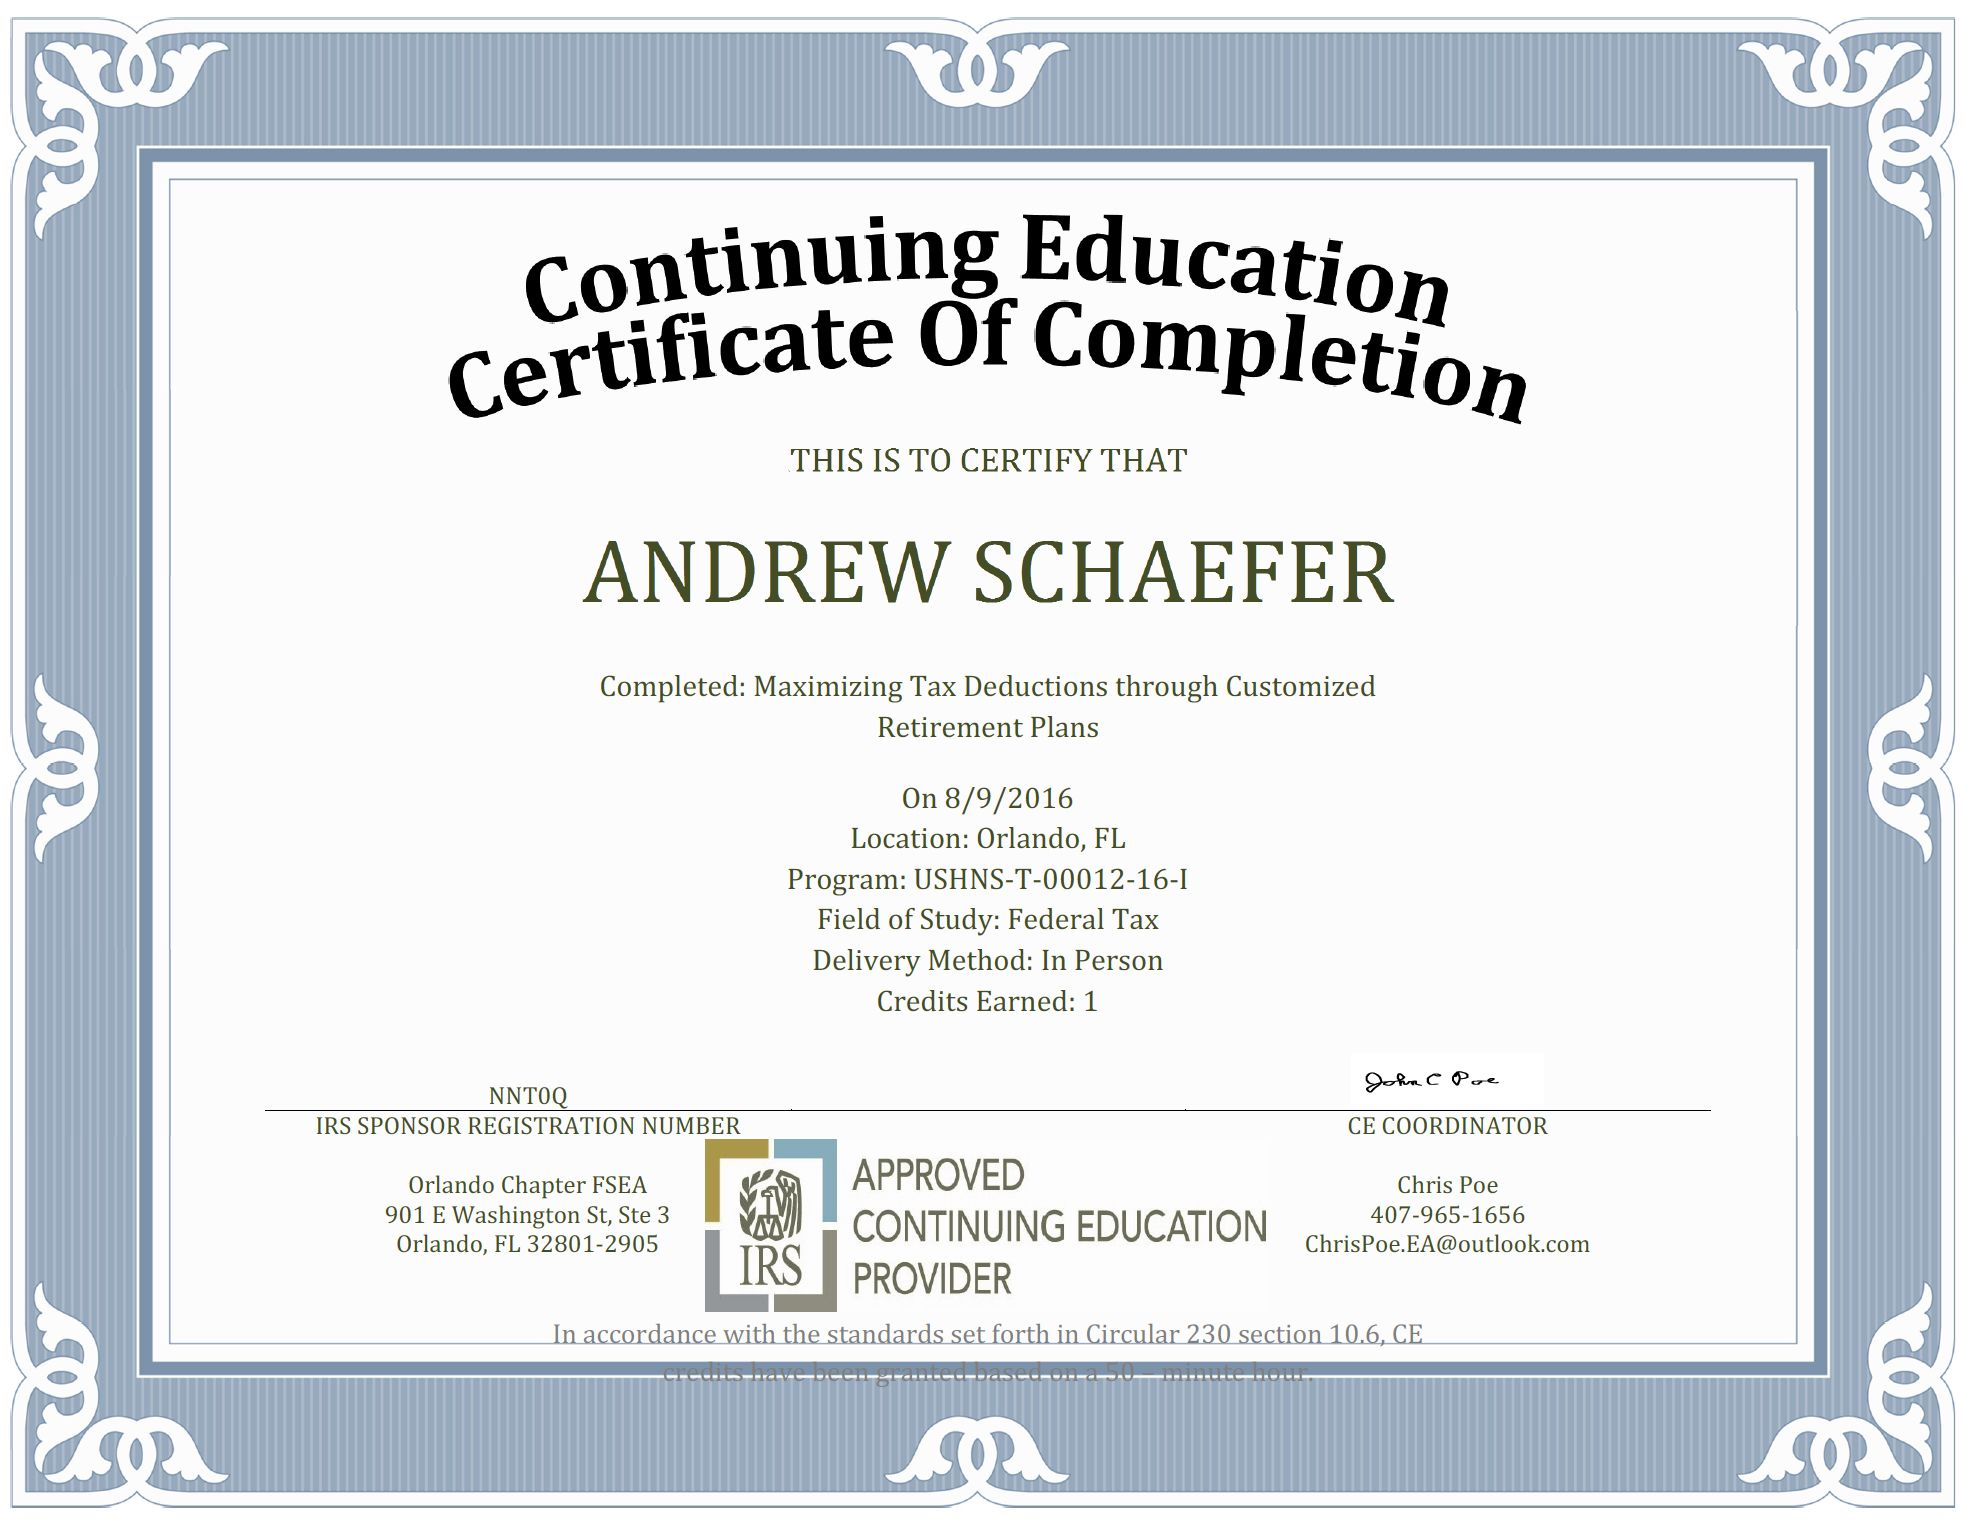 The Amazing Ceu Certificate Of Completion Template Sample Intended For Conti In 2020 Education Certificate Certificate Of Completion Template Certificate Of Completion